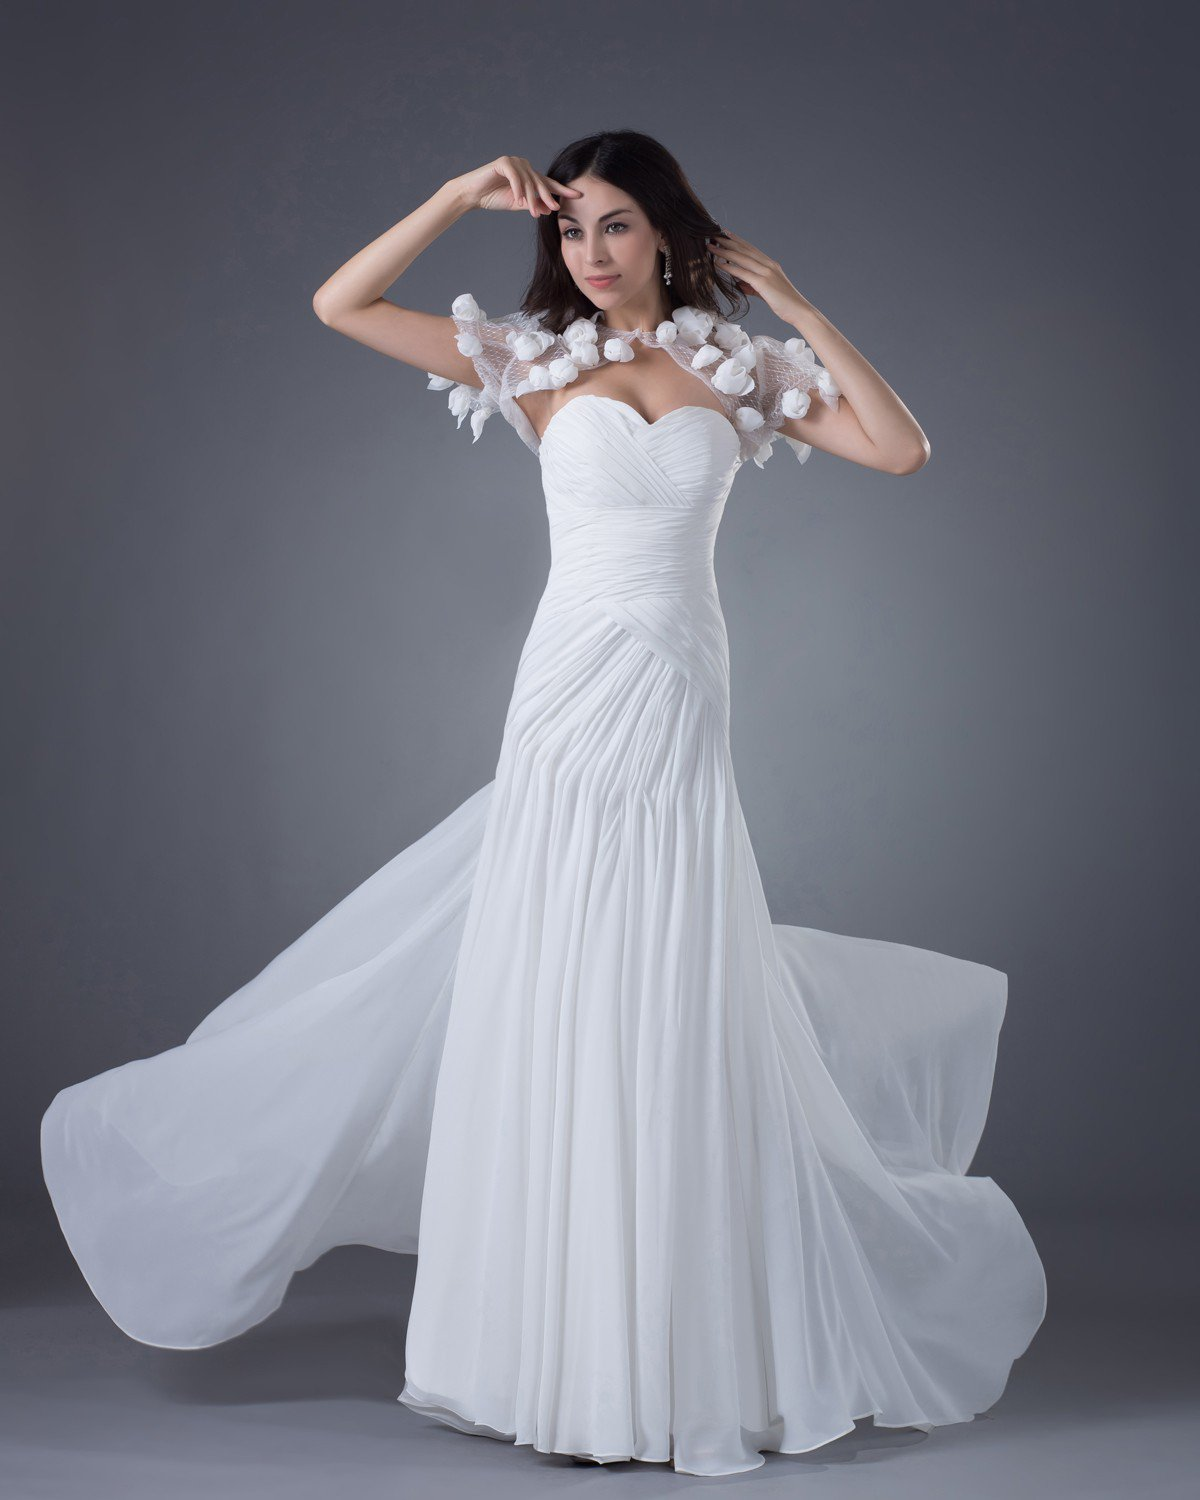 Chiffon Flowers Sweetheart Floor Length Sheath Wedding Dresses